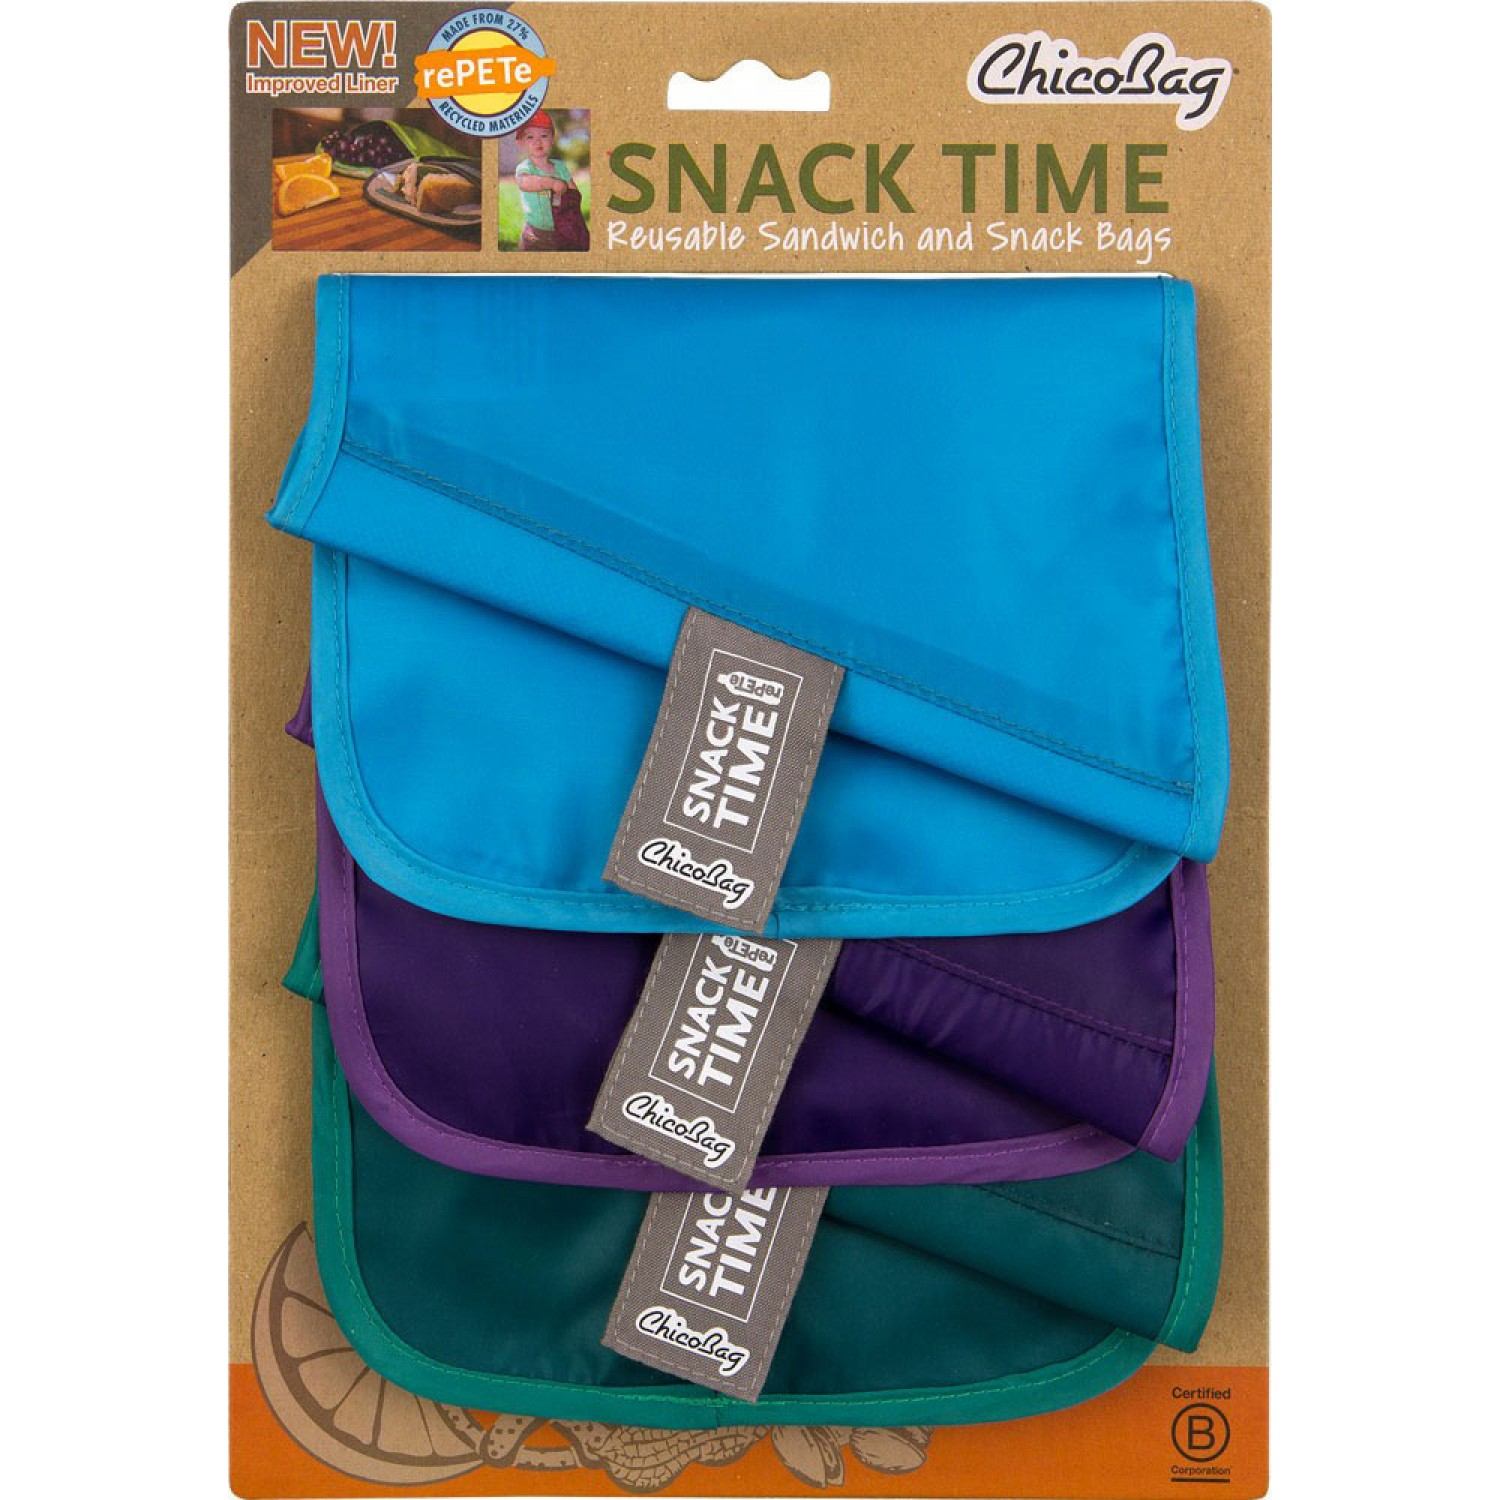 ChicoBag® Snack Time rePETe™ 3part Set Sandwich Bags